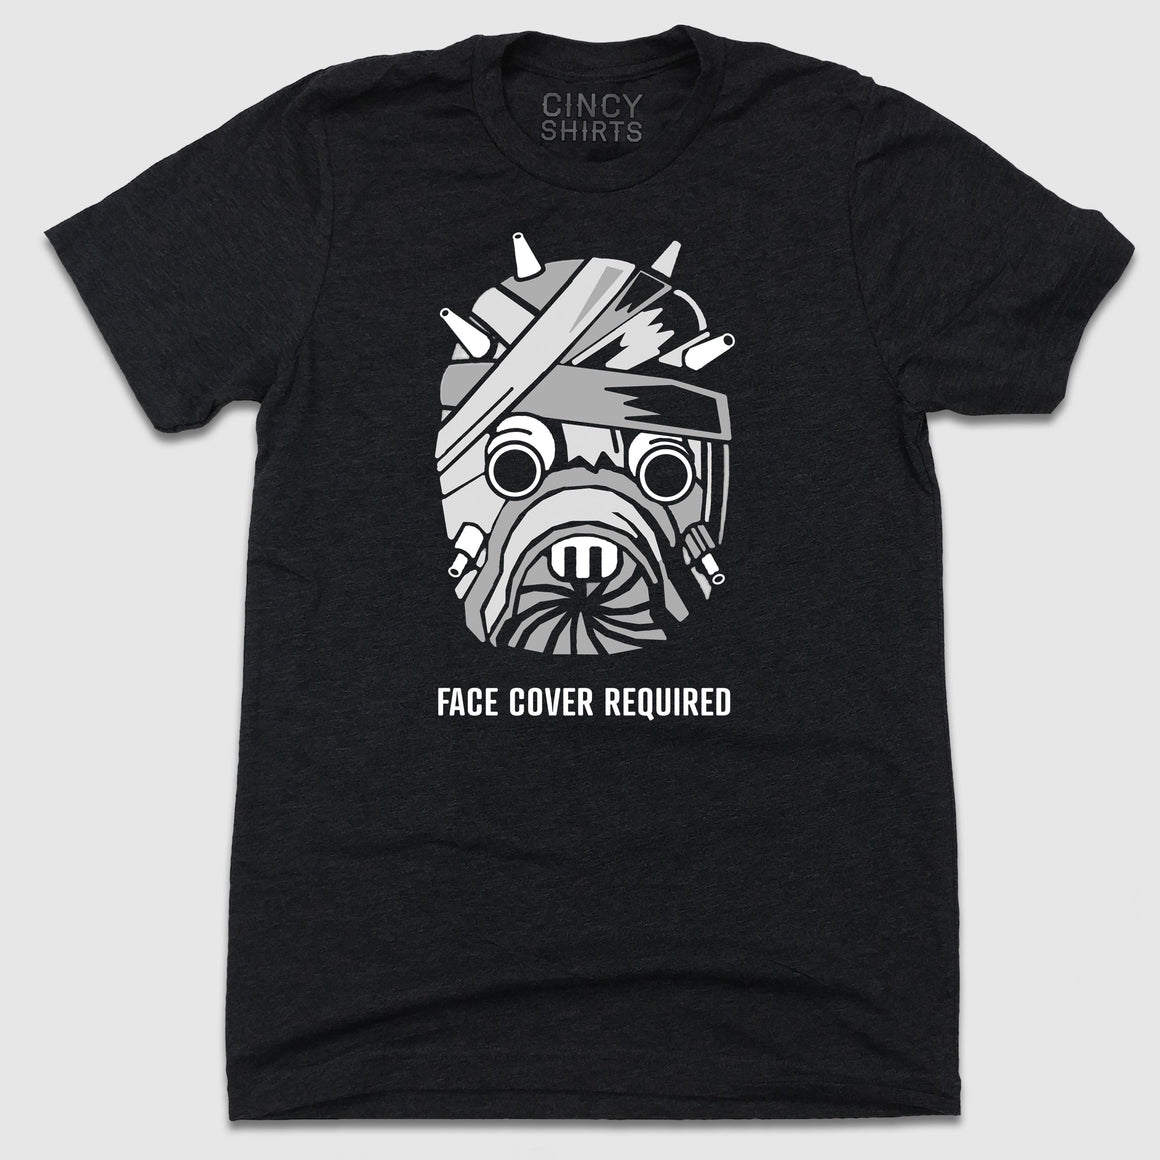 Face Cover Required - Cincy Shirts